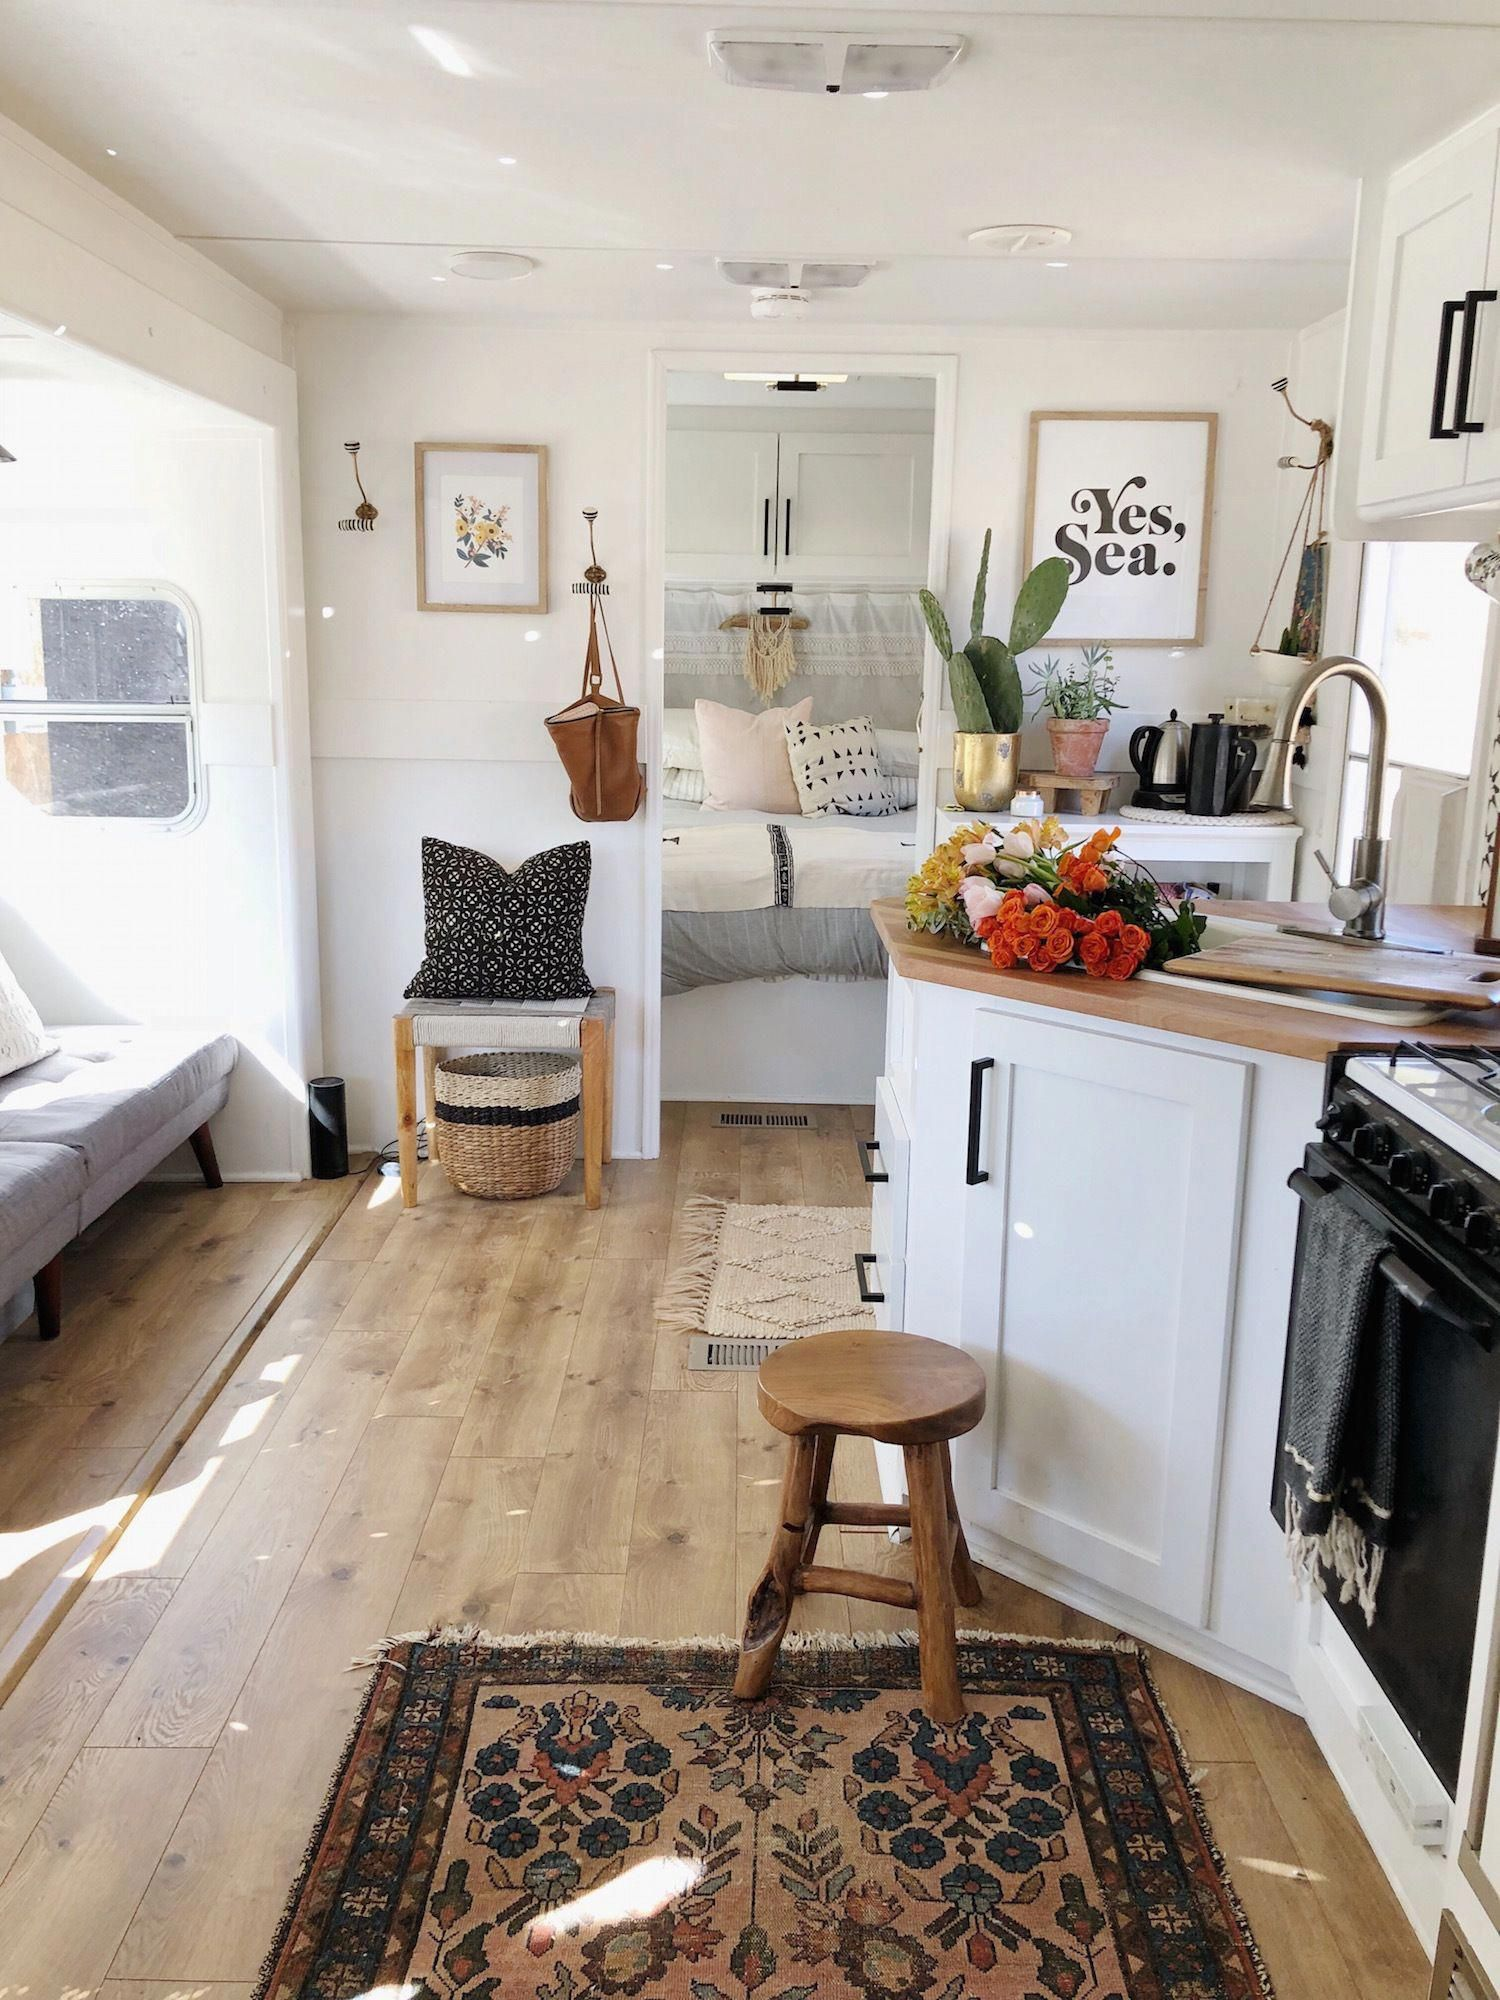 The couple share the master bedroom with a sliding door.